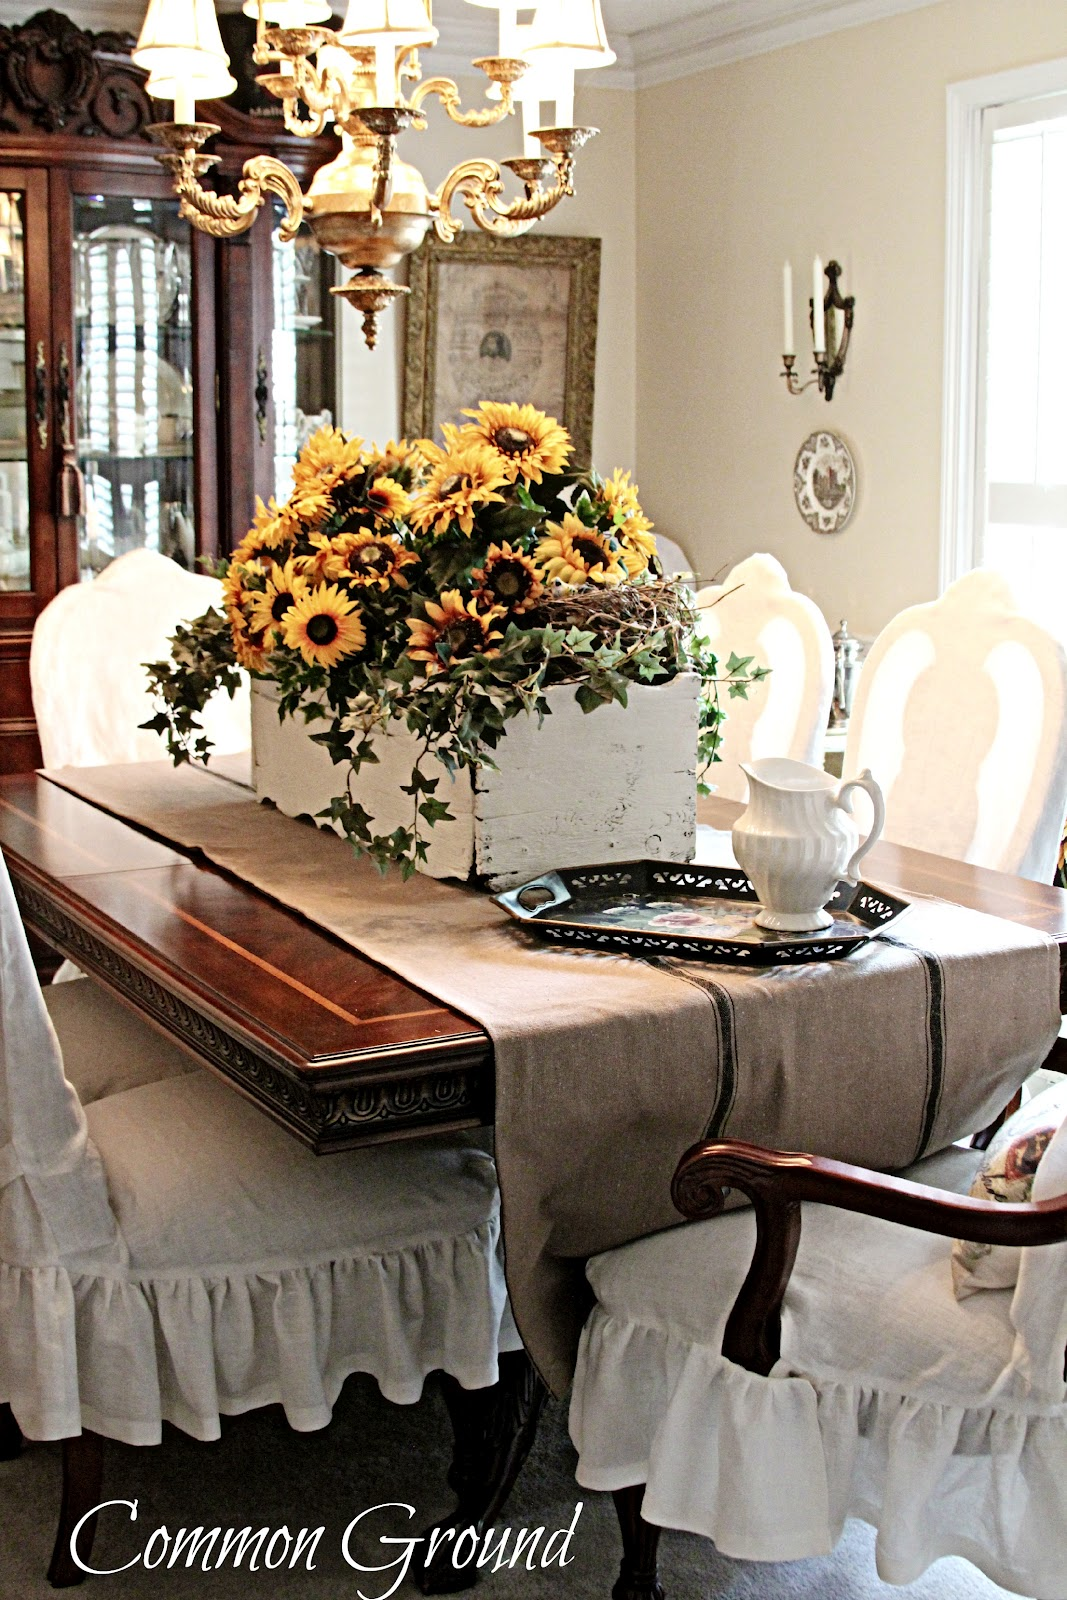 Common ground sunflowers Formal dining table centerpiece ideas